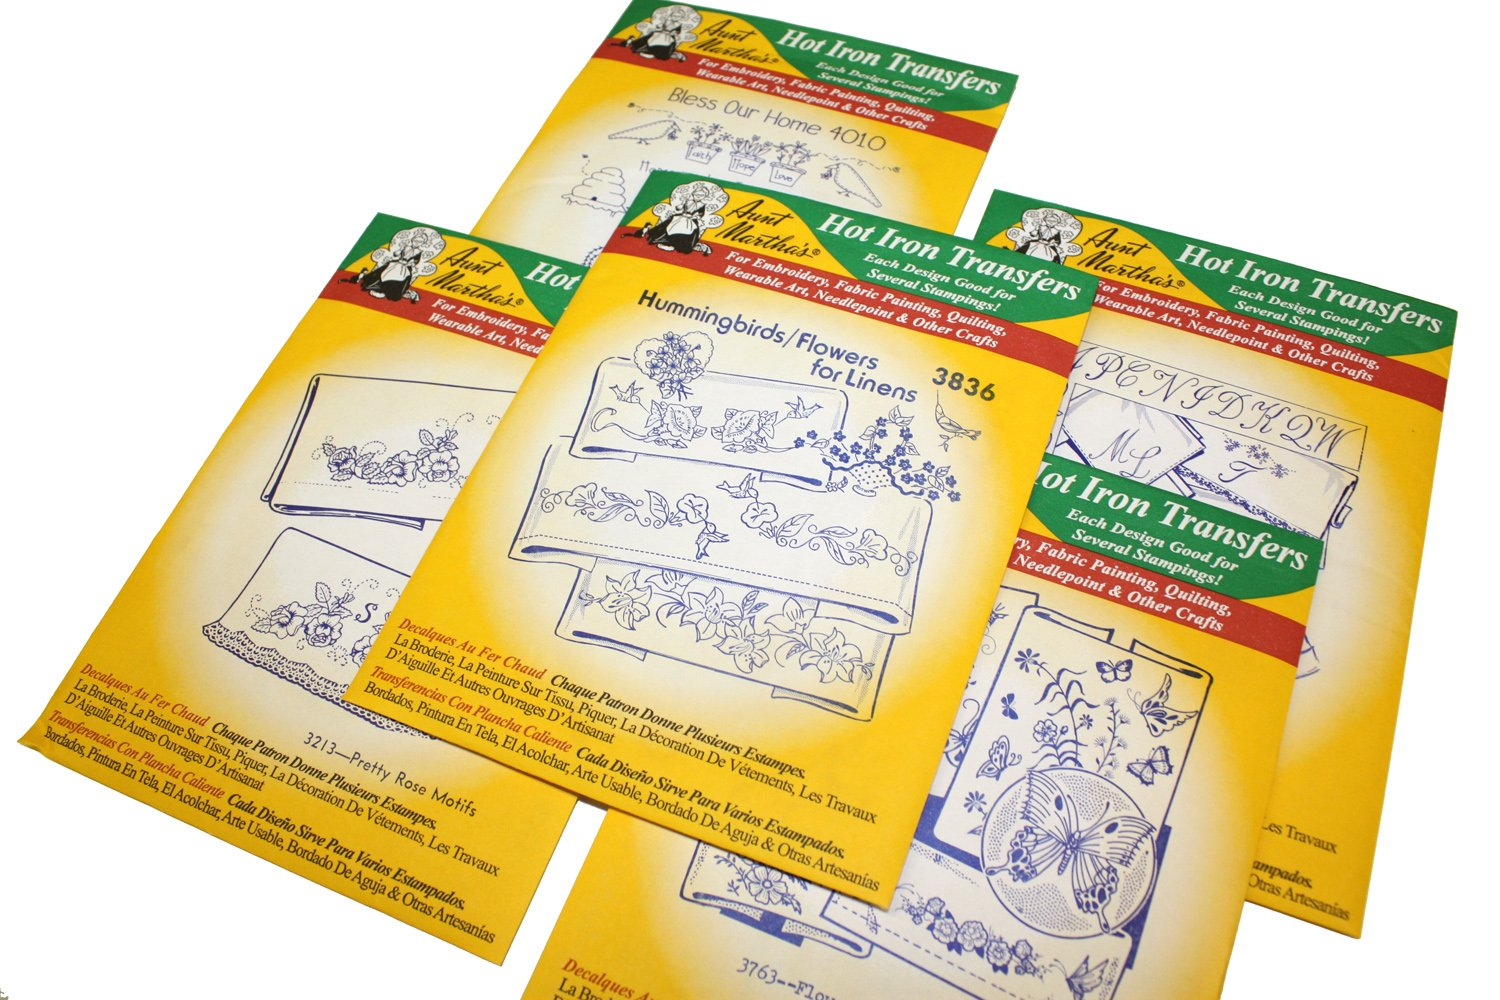 Aunt Martha's Iron On Transfer Patterns for Stitching, Embroidery or Fabric Painting, Patterns for Linens, Set of 5